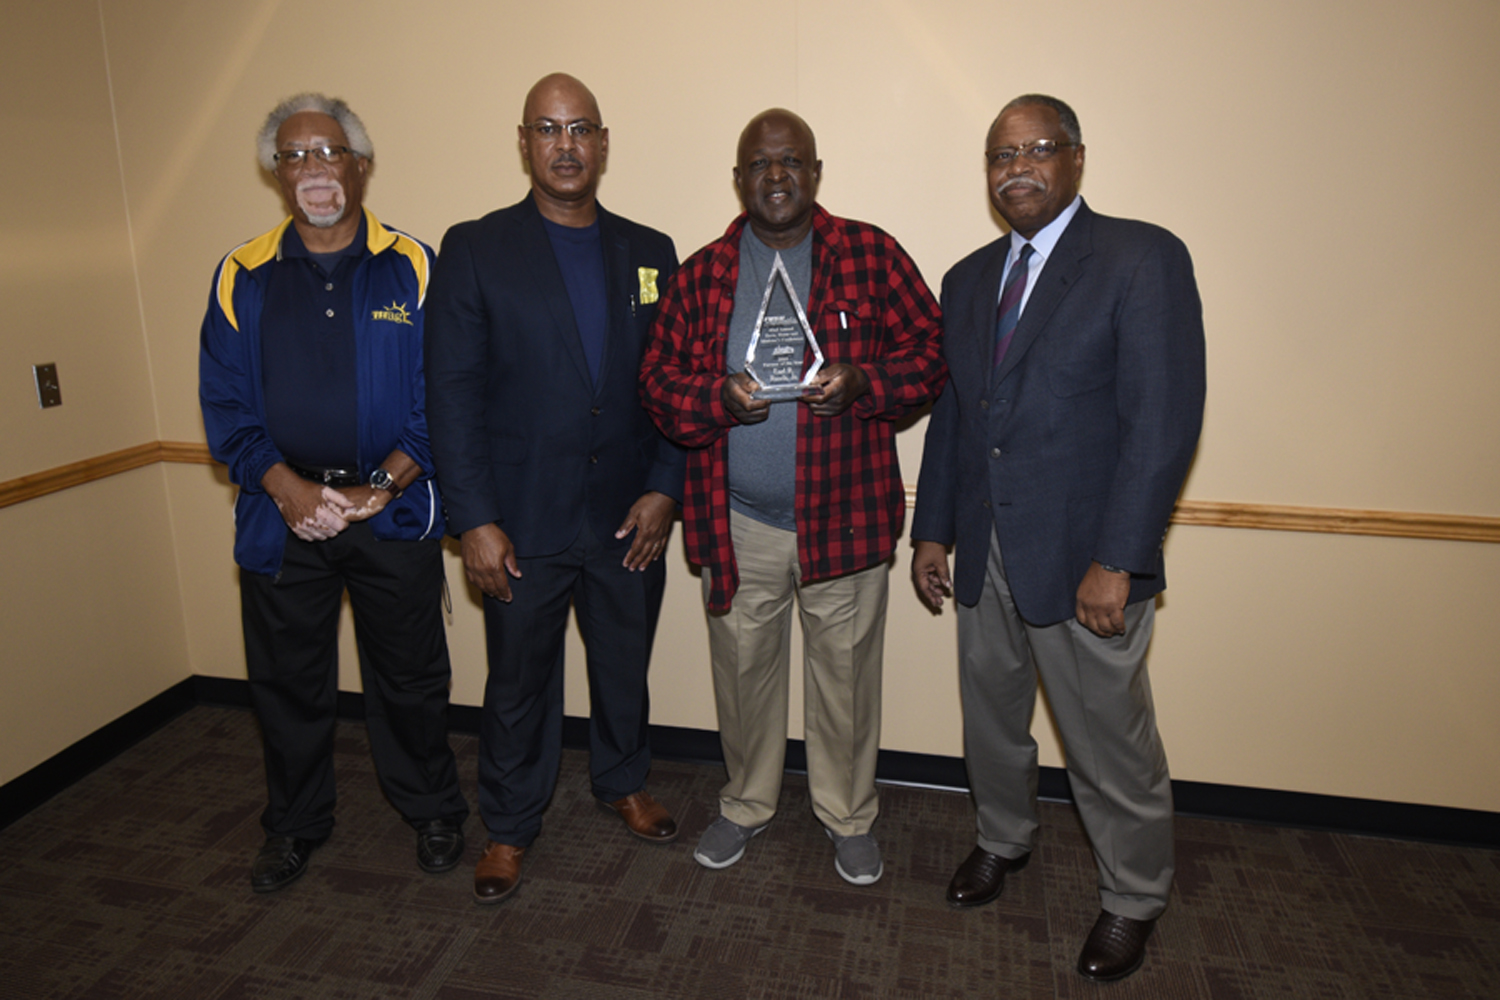 Earl Rawls (holding award) receives the 2019 ANR Farm Family of the Year Award from FVSU Extension personnel (from left) Leon Porter, program assistant for Houston County; Charlie Grace, FVSU Extension agent for Dougherty, Lee and Worthy Counties (far rig